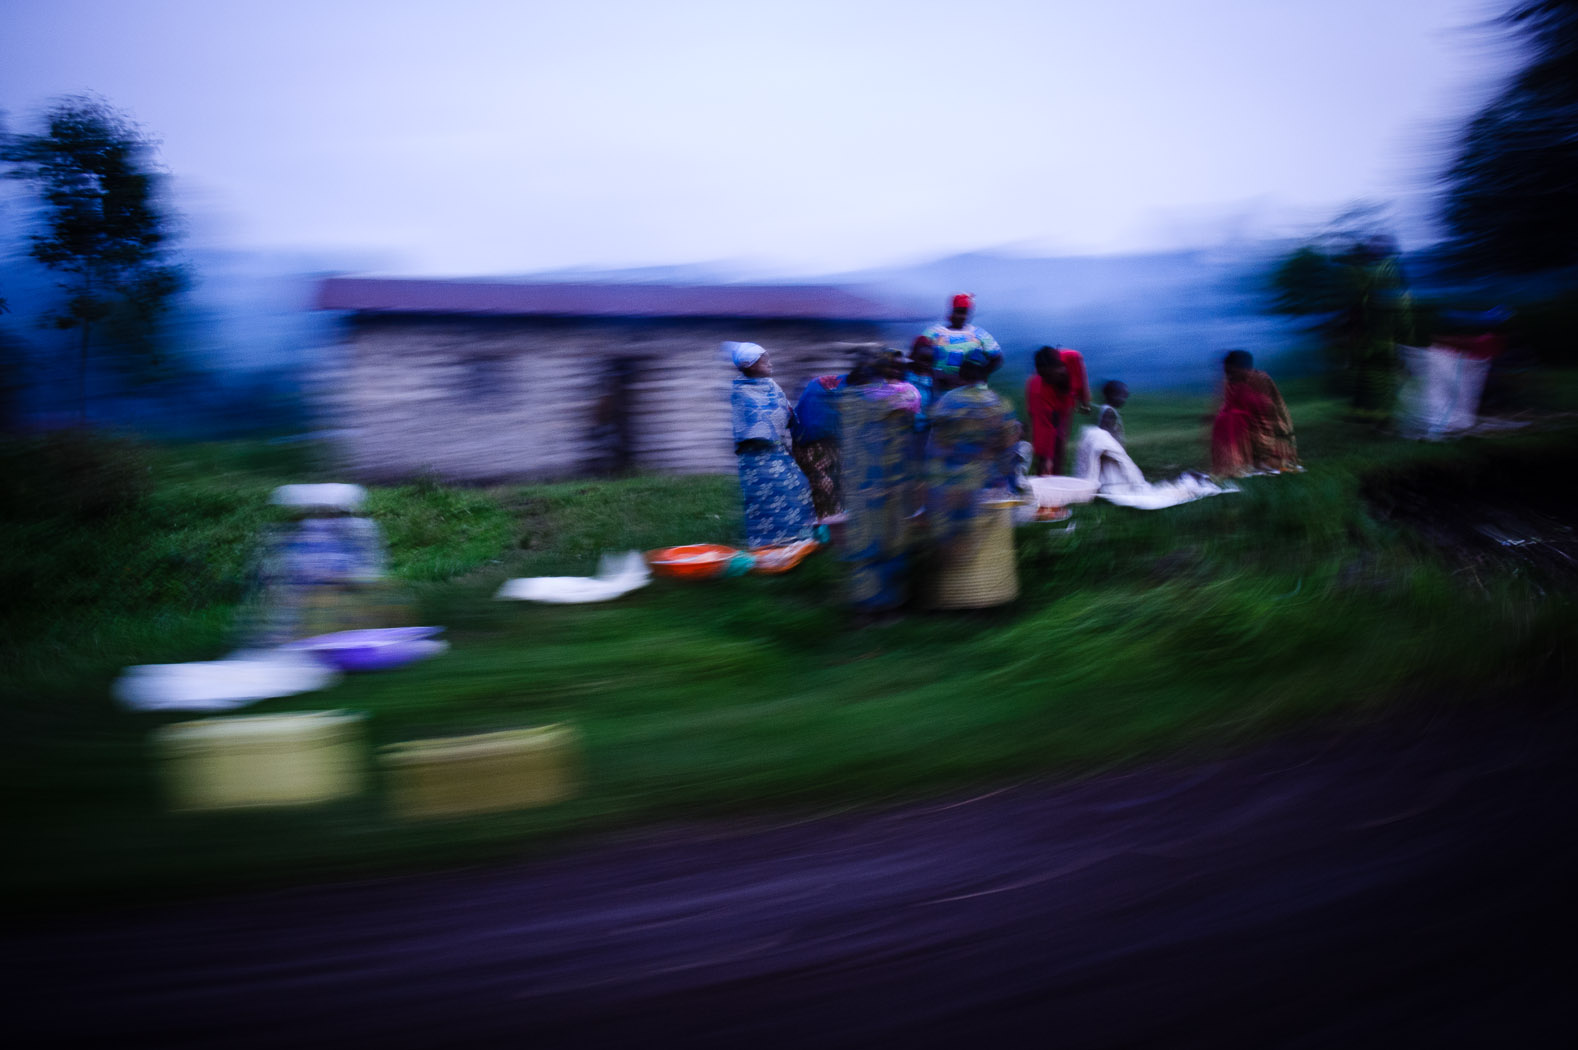 Internally displaced persons gather on the roadside on the outskirts of Goma